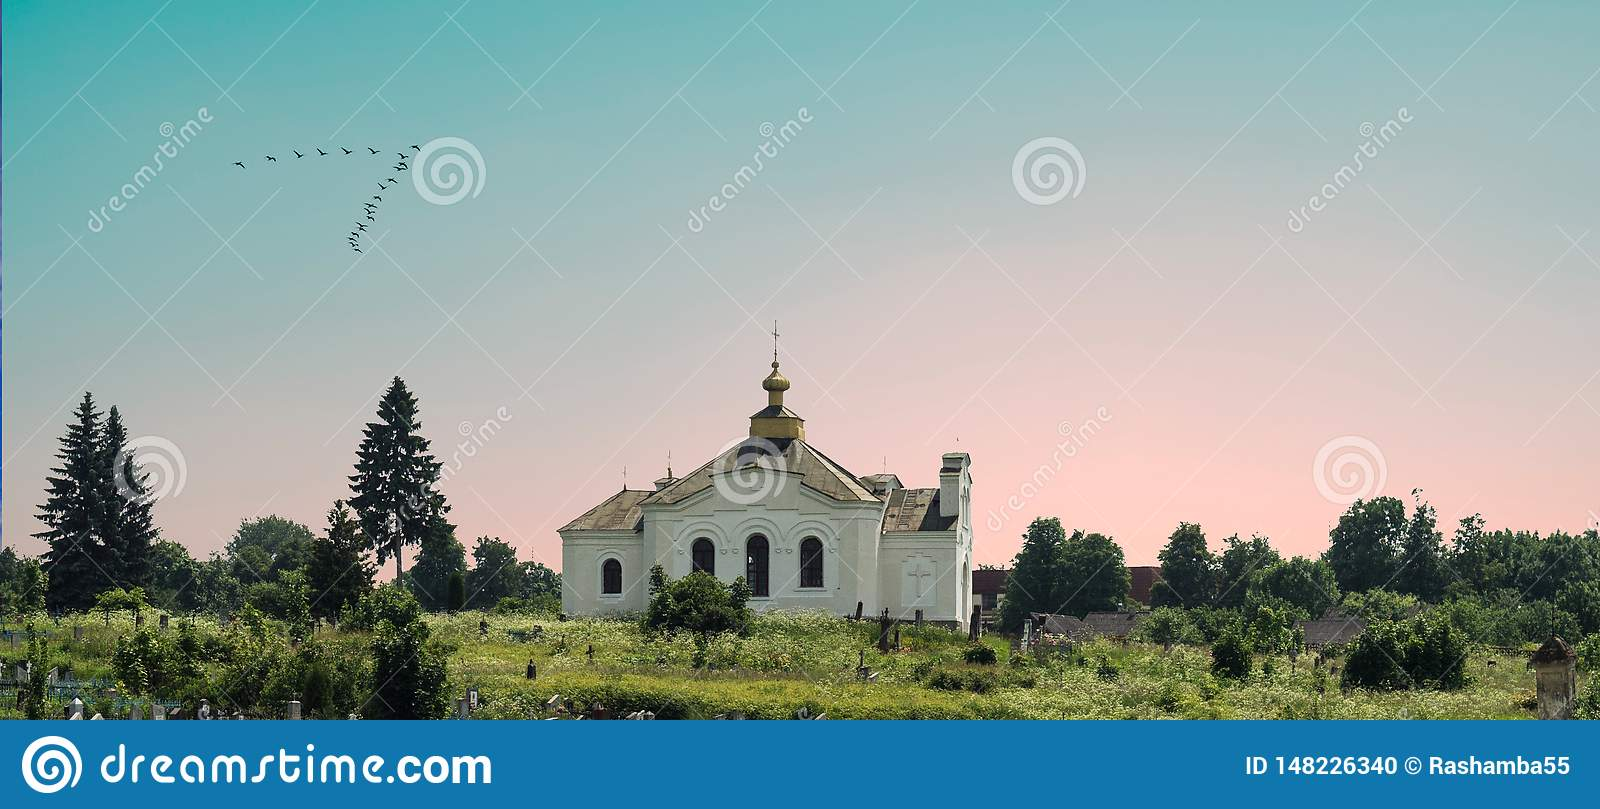 White orthodox church among the trees on the background of beautiful pink and blue sky